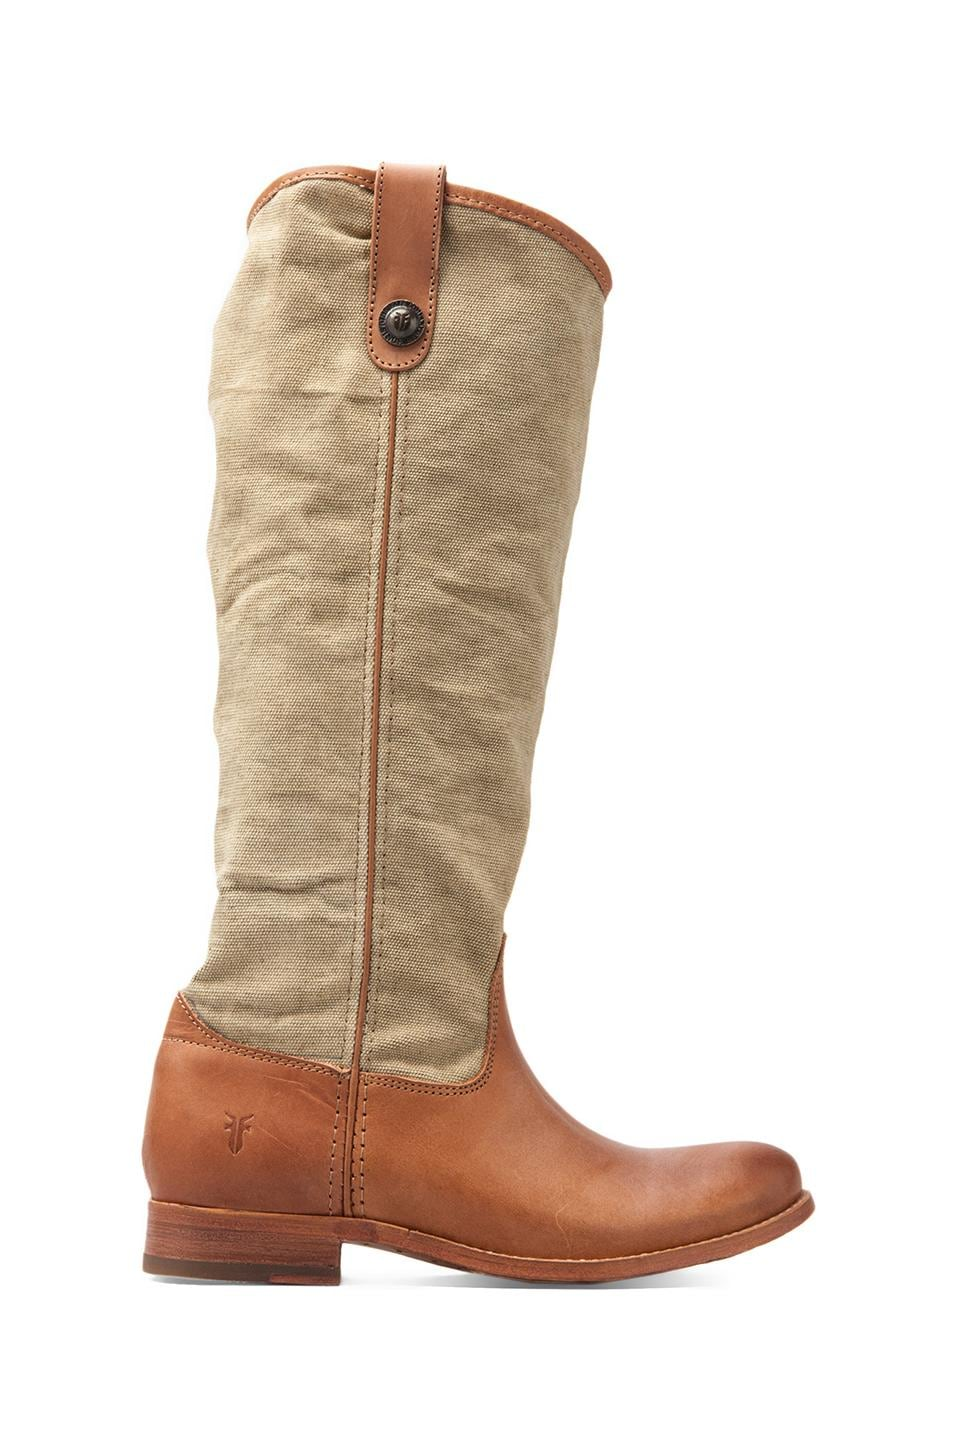 Frye Melissa Button Boot in Canvas/Veg Khaki Tan